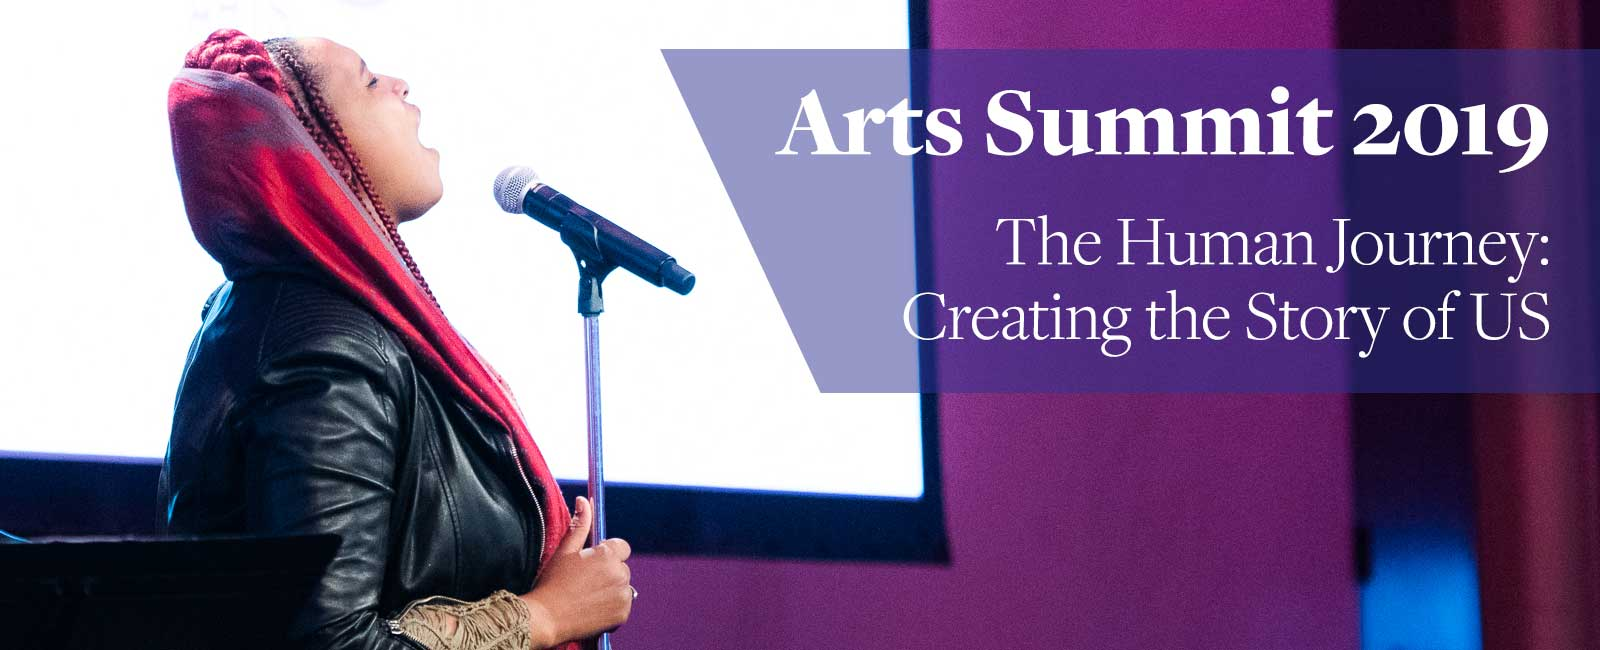 The Kennedy Center Arts Summit 2019, The Human Journey: Creating the Story of US